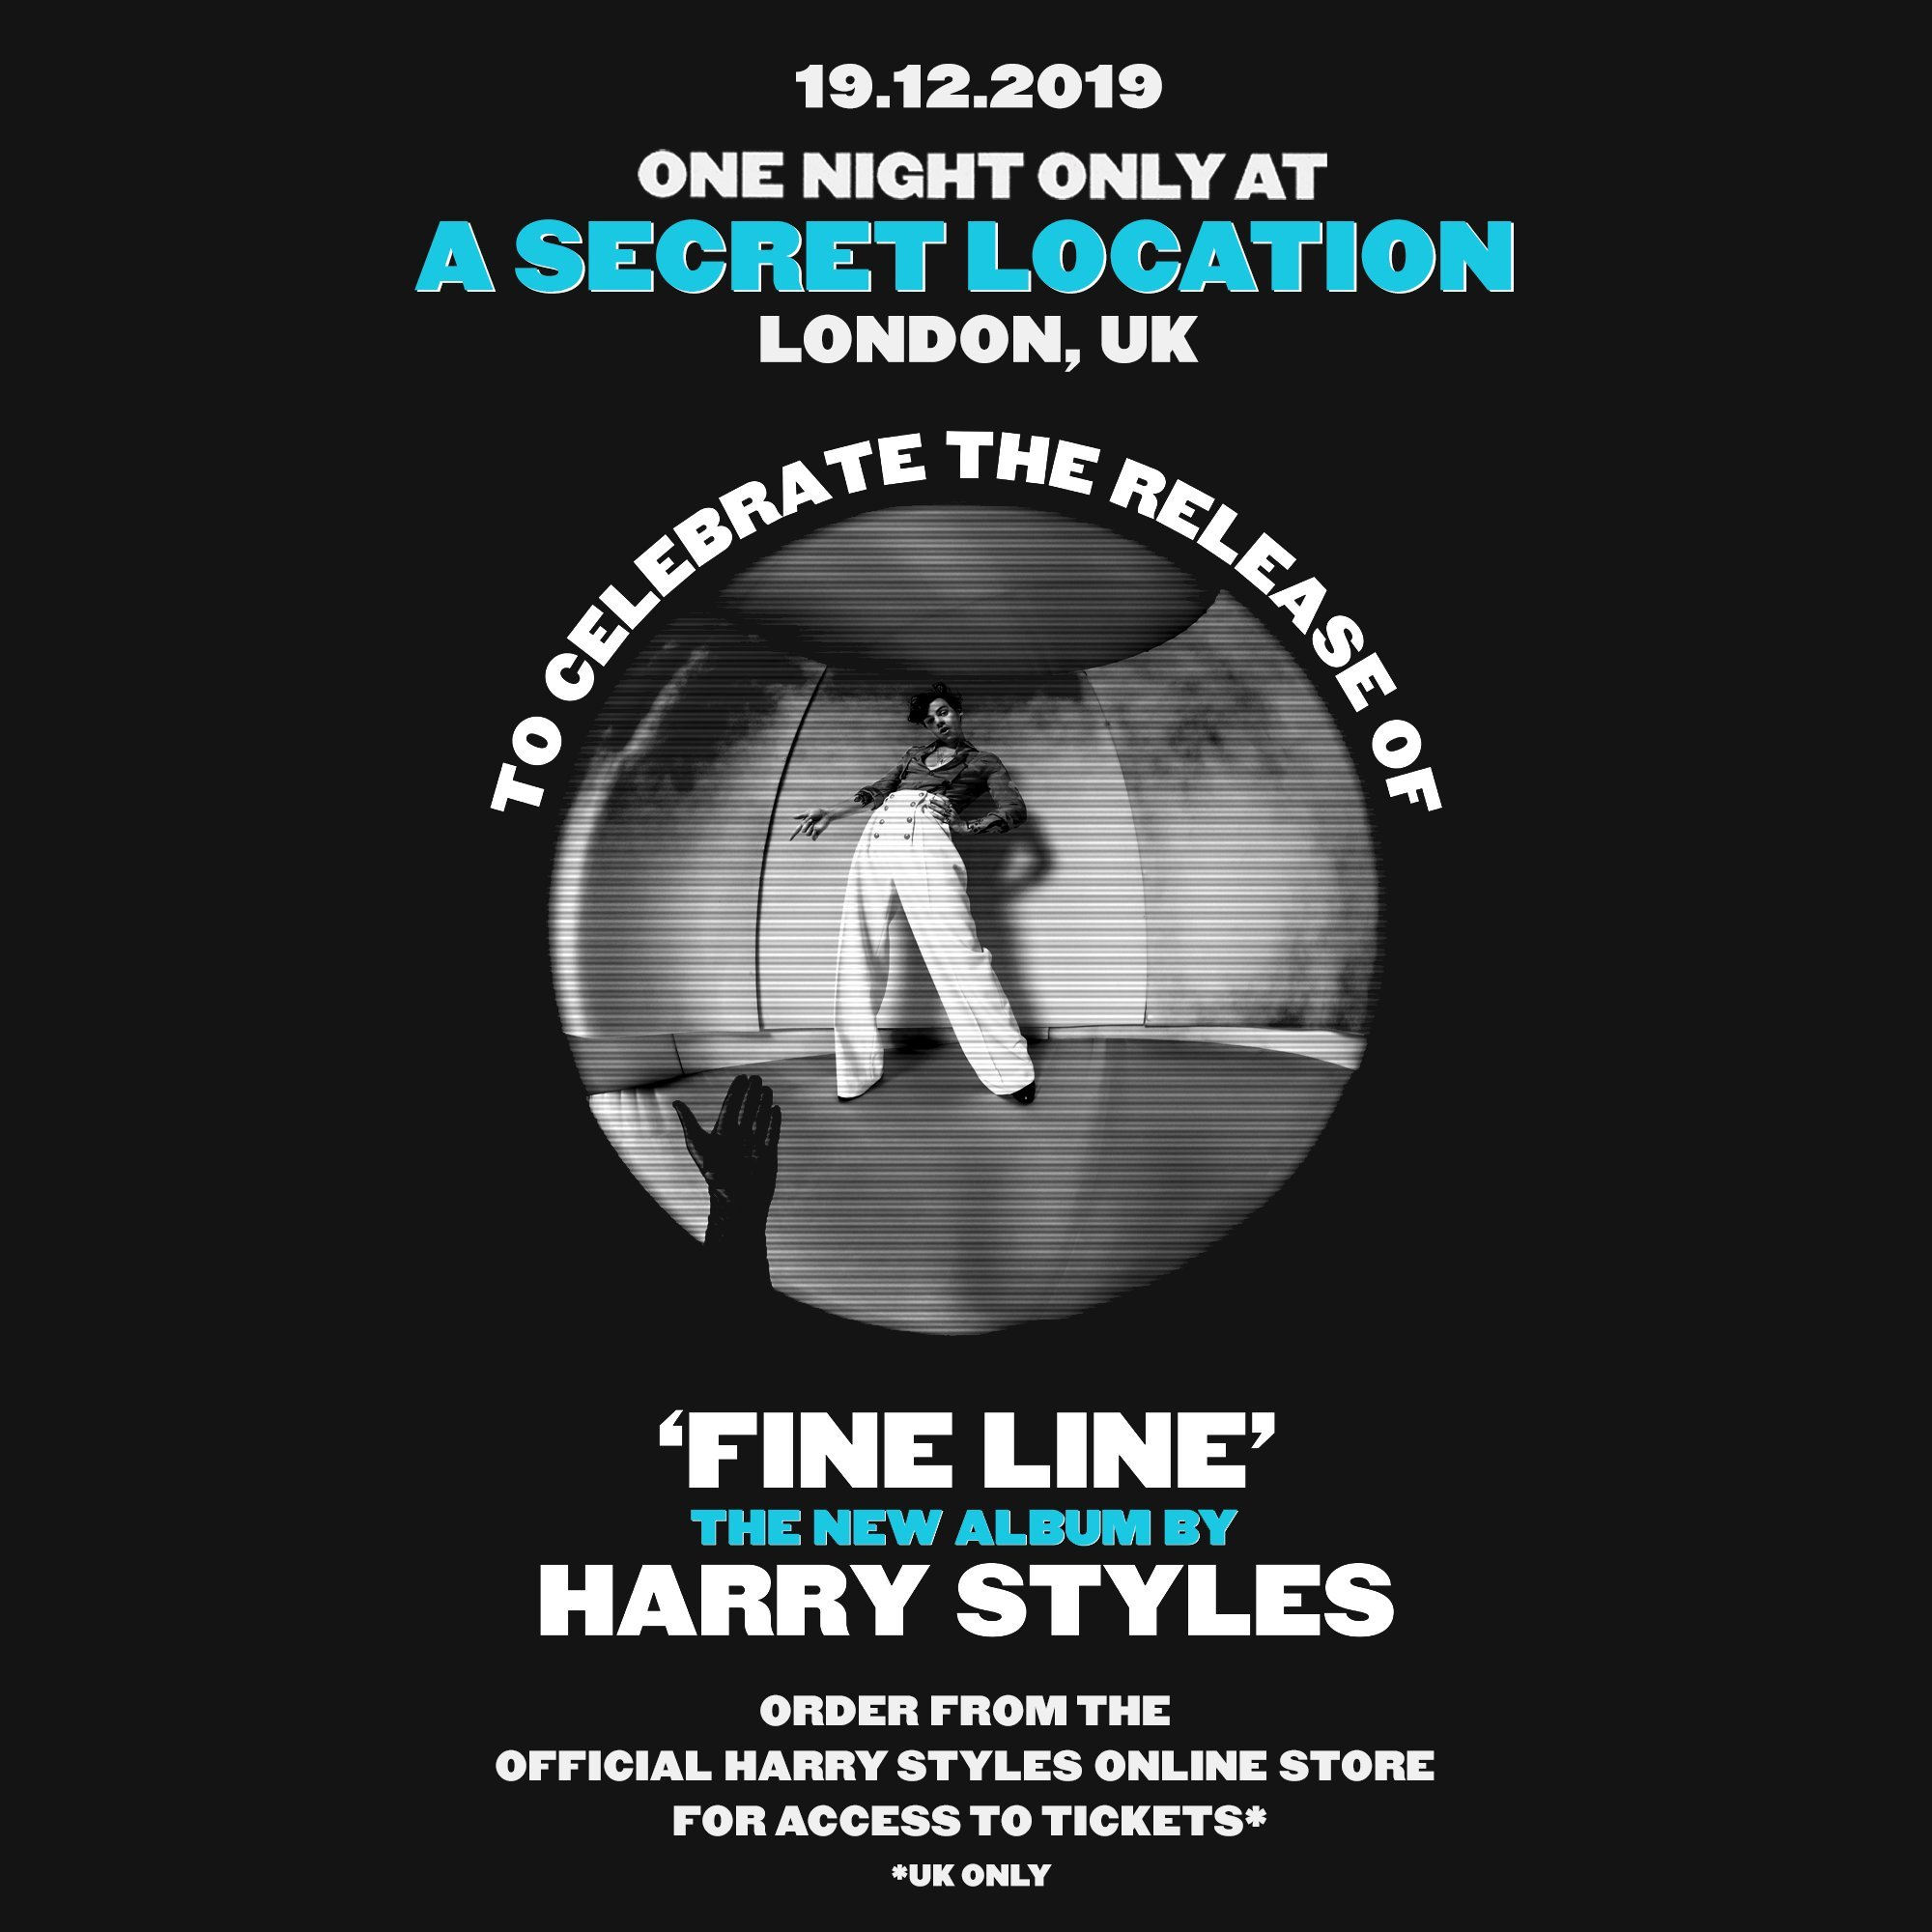 Harry Styles is playing a secret London location on 19th December